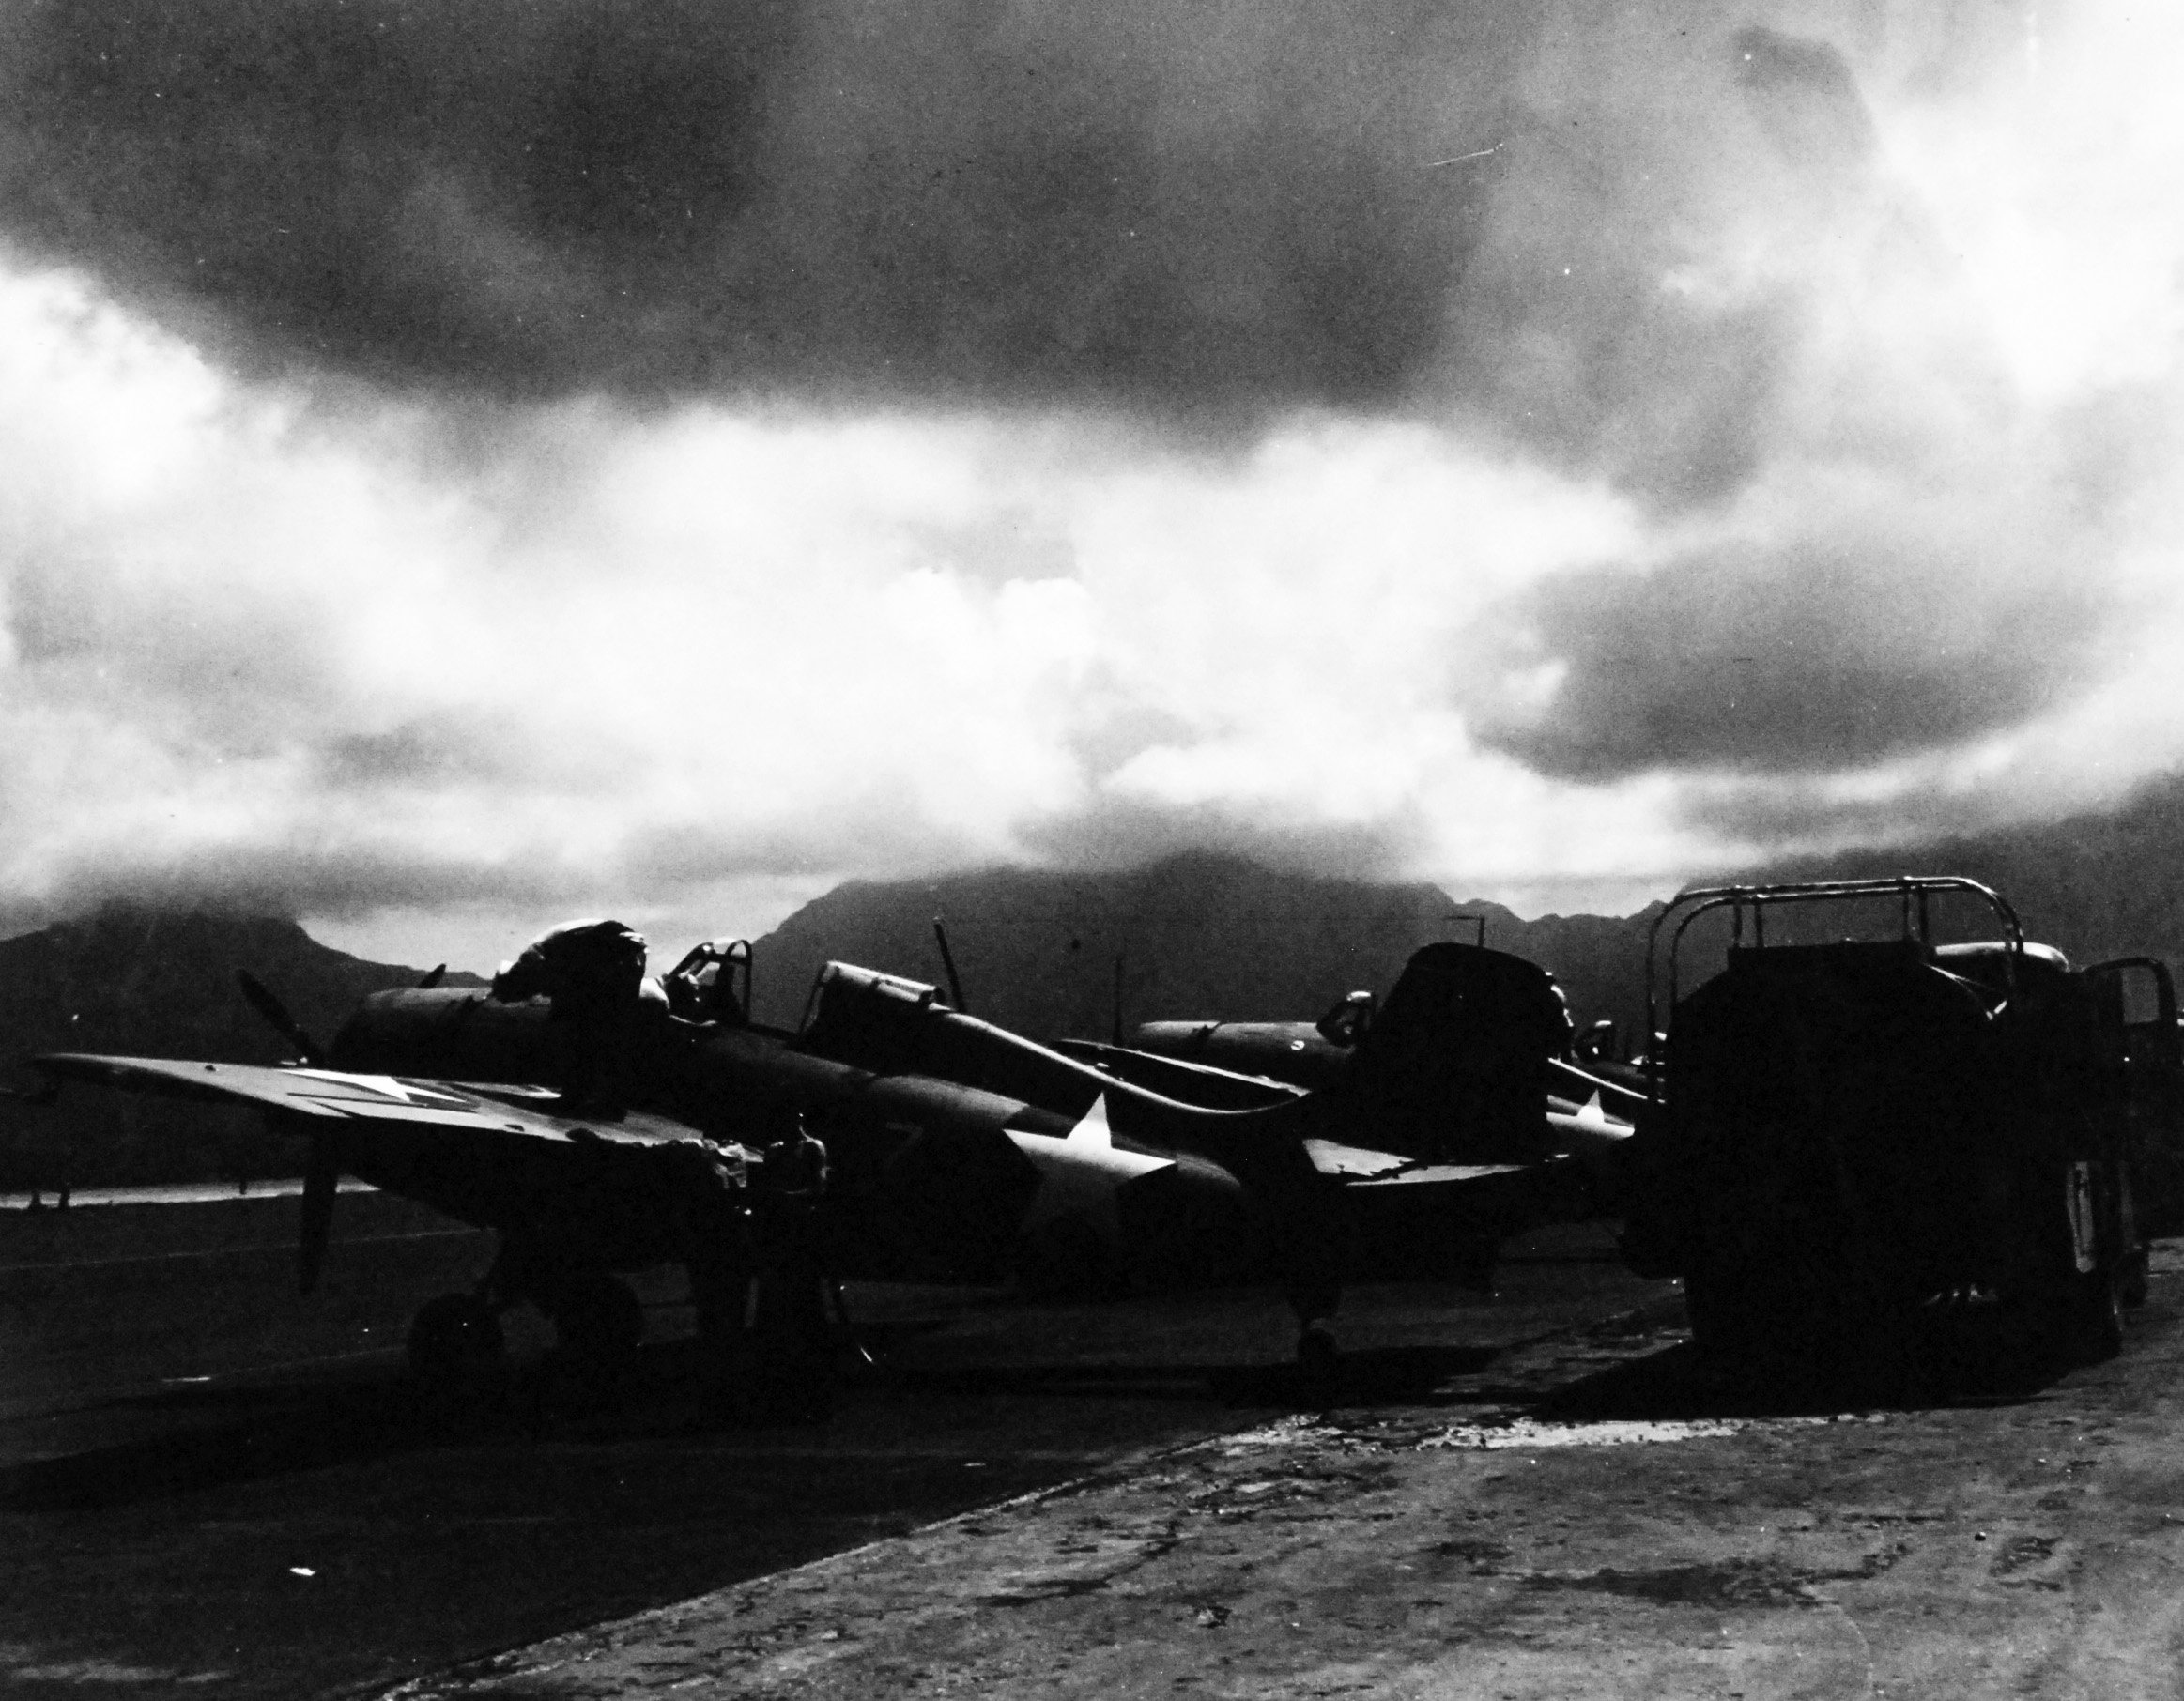 Grumman F4F 4 Wildcat White 7 being refueled before a storm hits 01